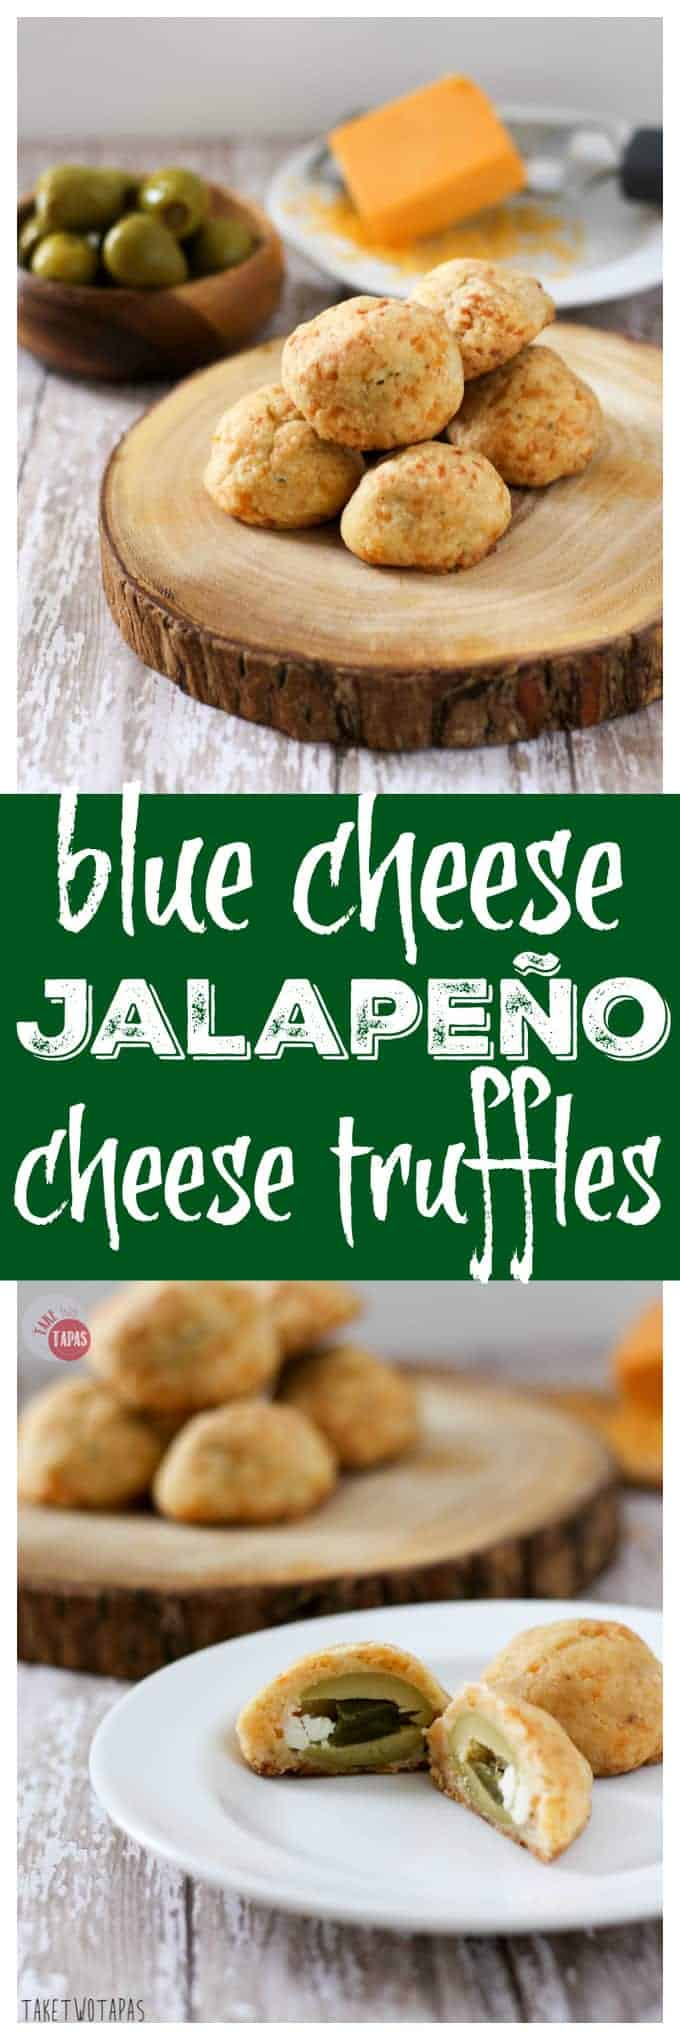 Blue Cheese Jalapeño Cheese Truffles with Olives | Take Two Tapas